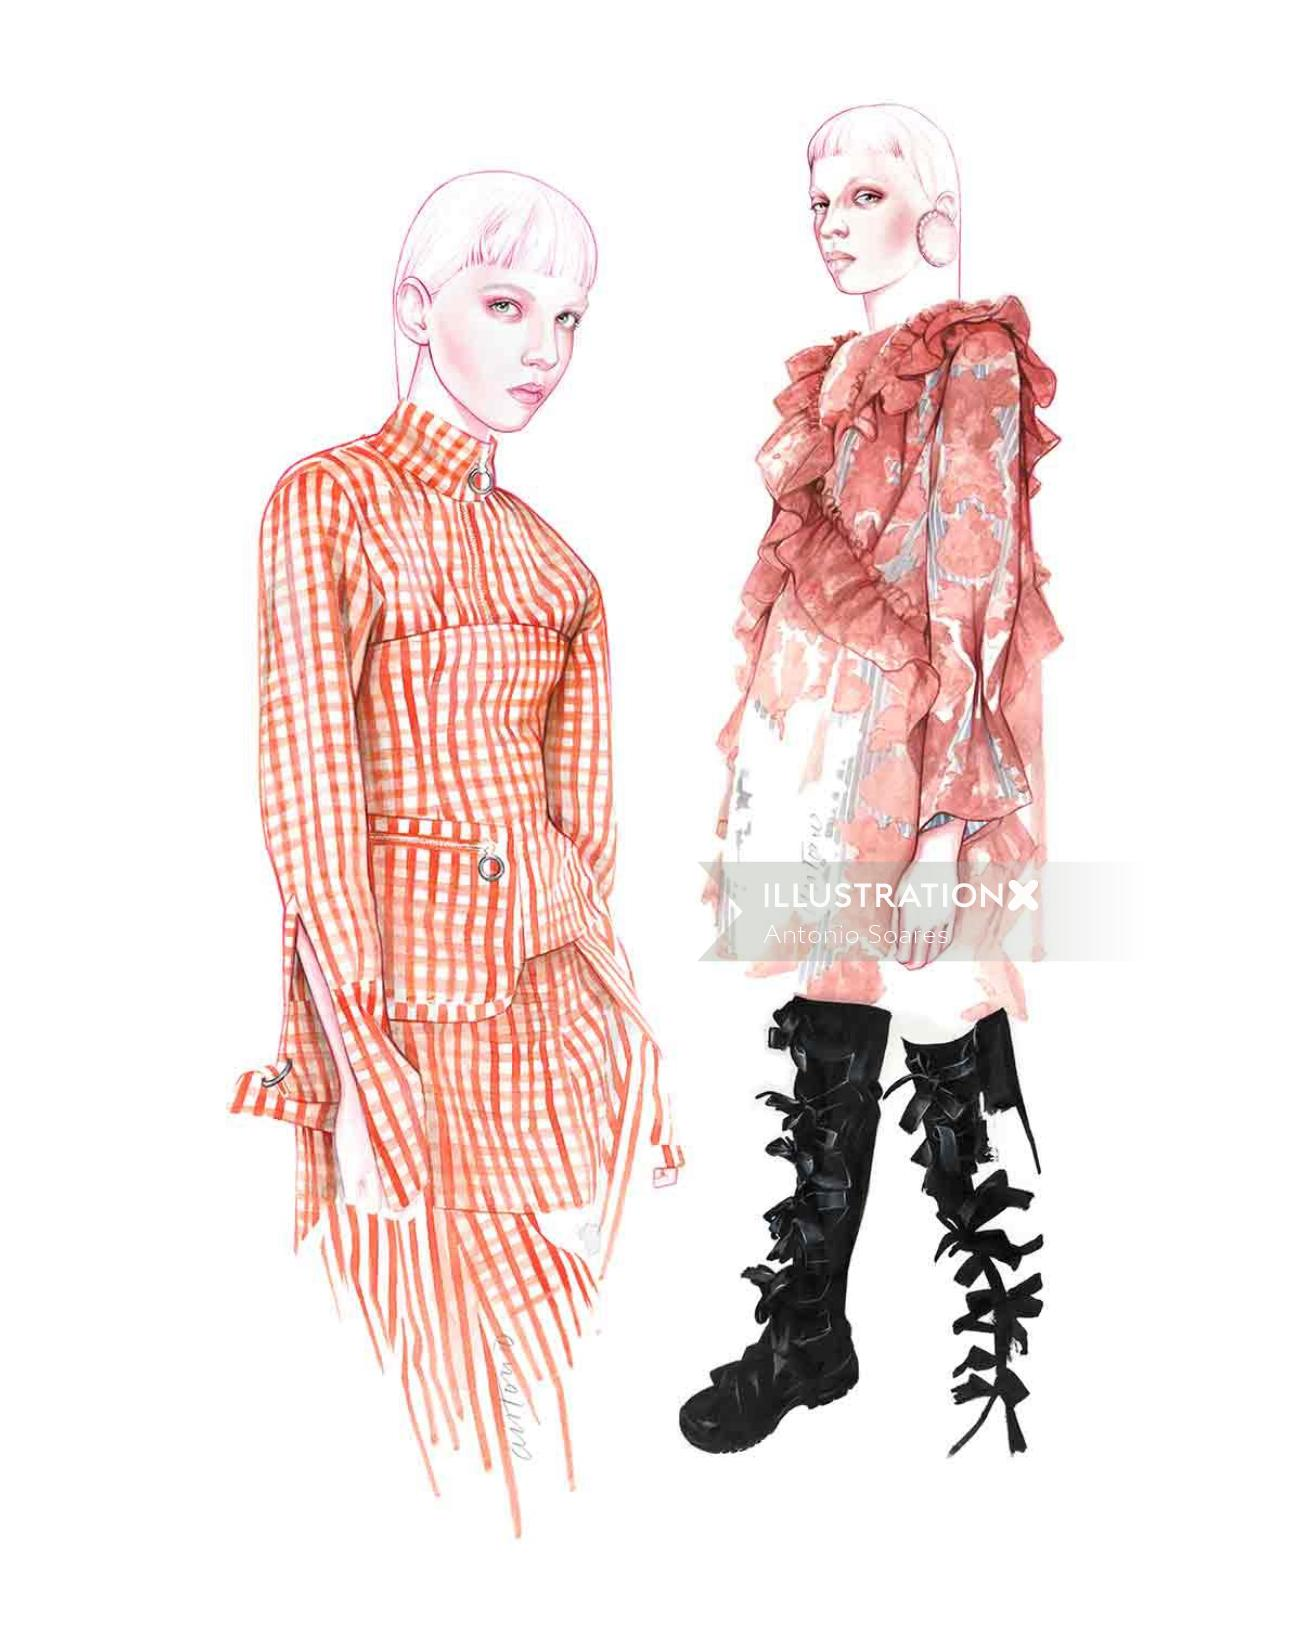 fashion artwork of models with Marques'Almeida clothing